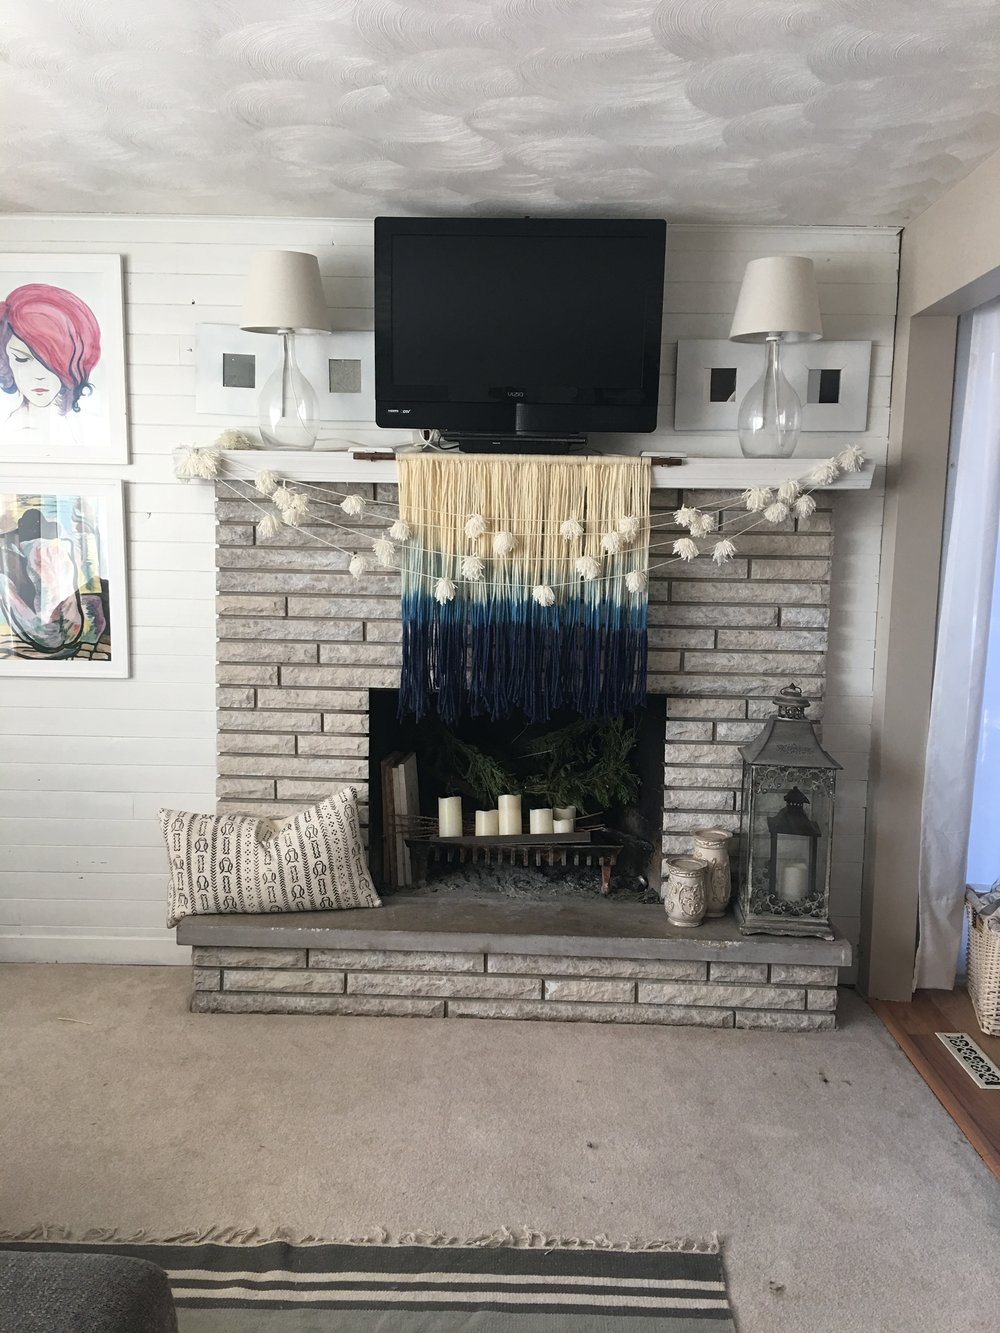 I painted the whole thing white, and I actually really liked it but I wanted a space that I could store wood. So my mind automatically went to a built in style. Then I made the mistake of Pinteresting fire place Reno's and man, there is a lot of talent out there #amirightladies